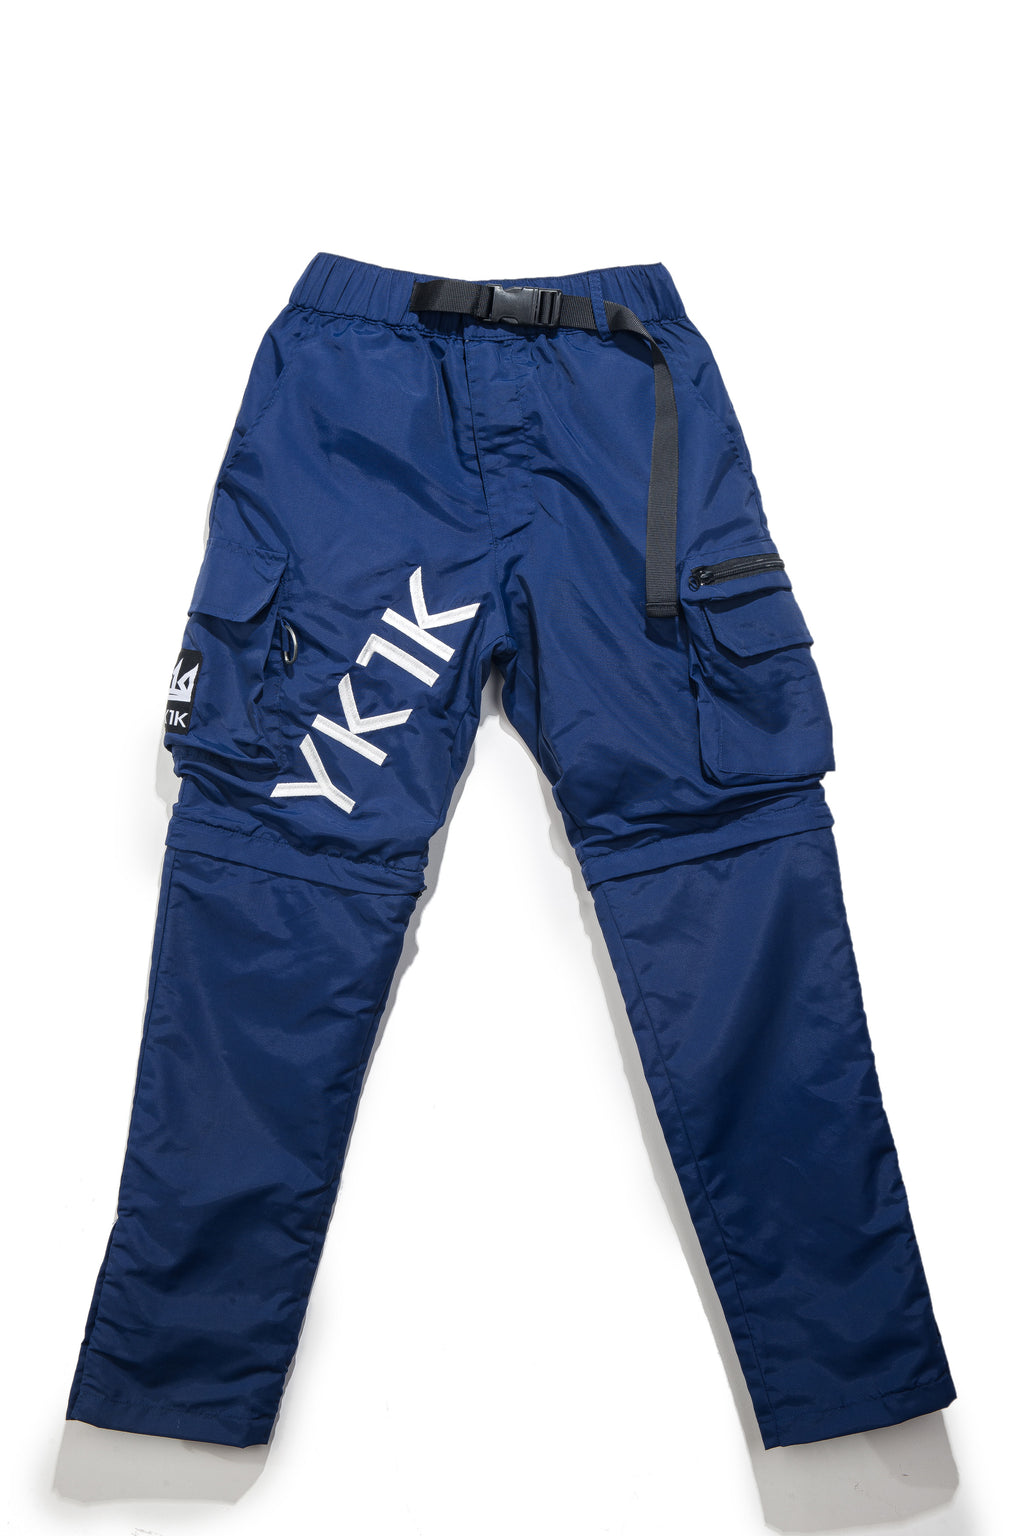 YK1K CARGO PANTS/SHORTS NAVY